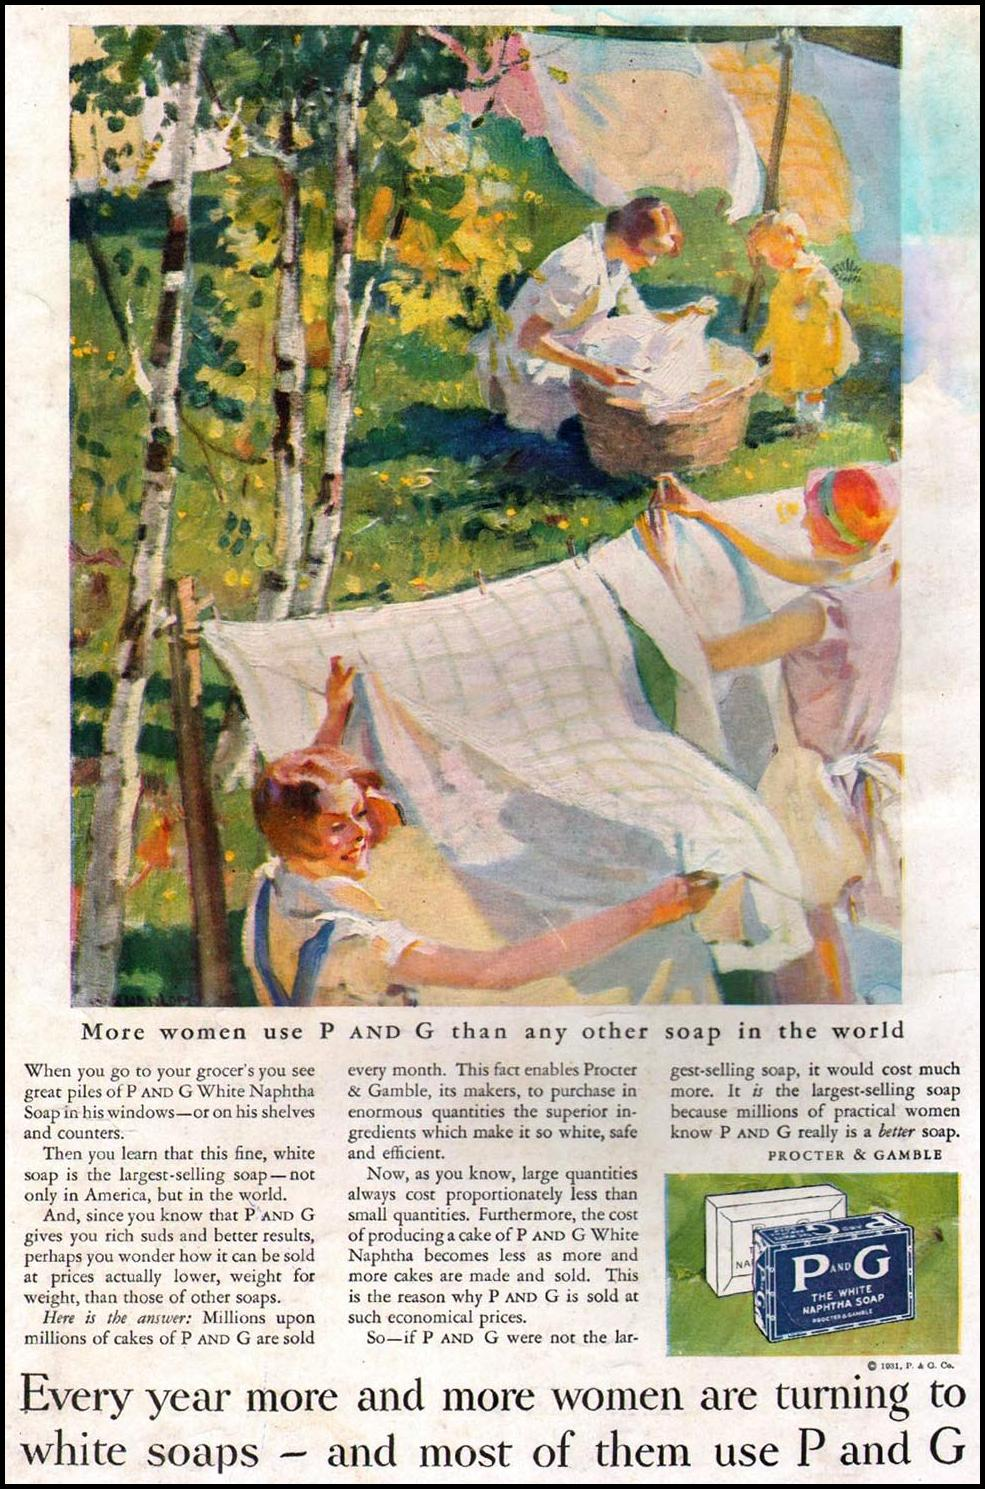 P AND G SOAP BETTER HOMES AND GARDENS 04/01/1931 BACK COVER